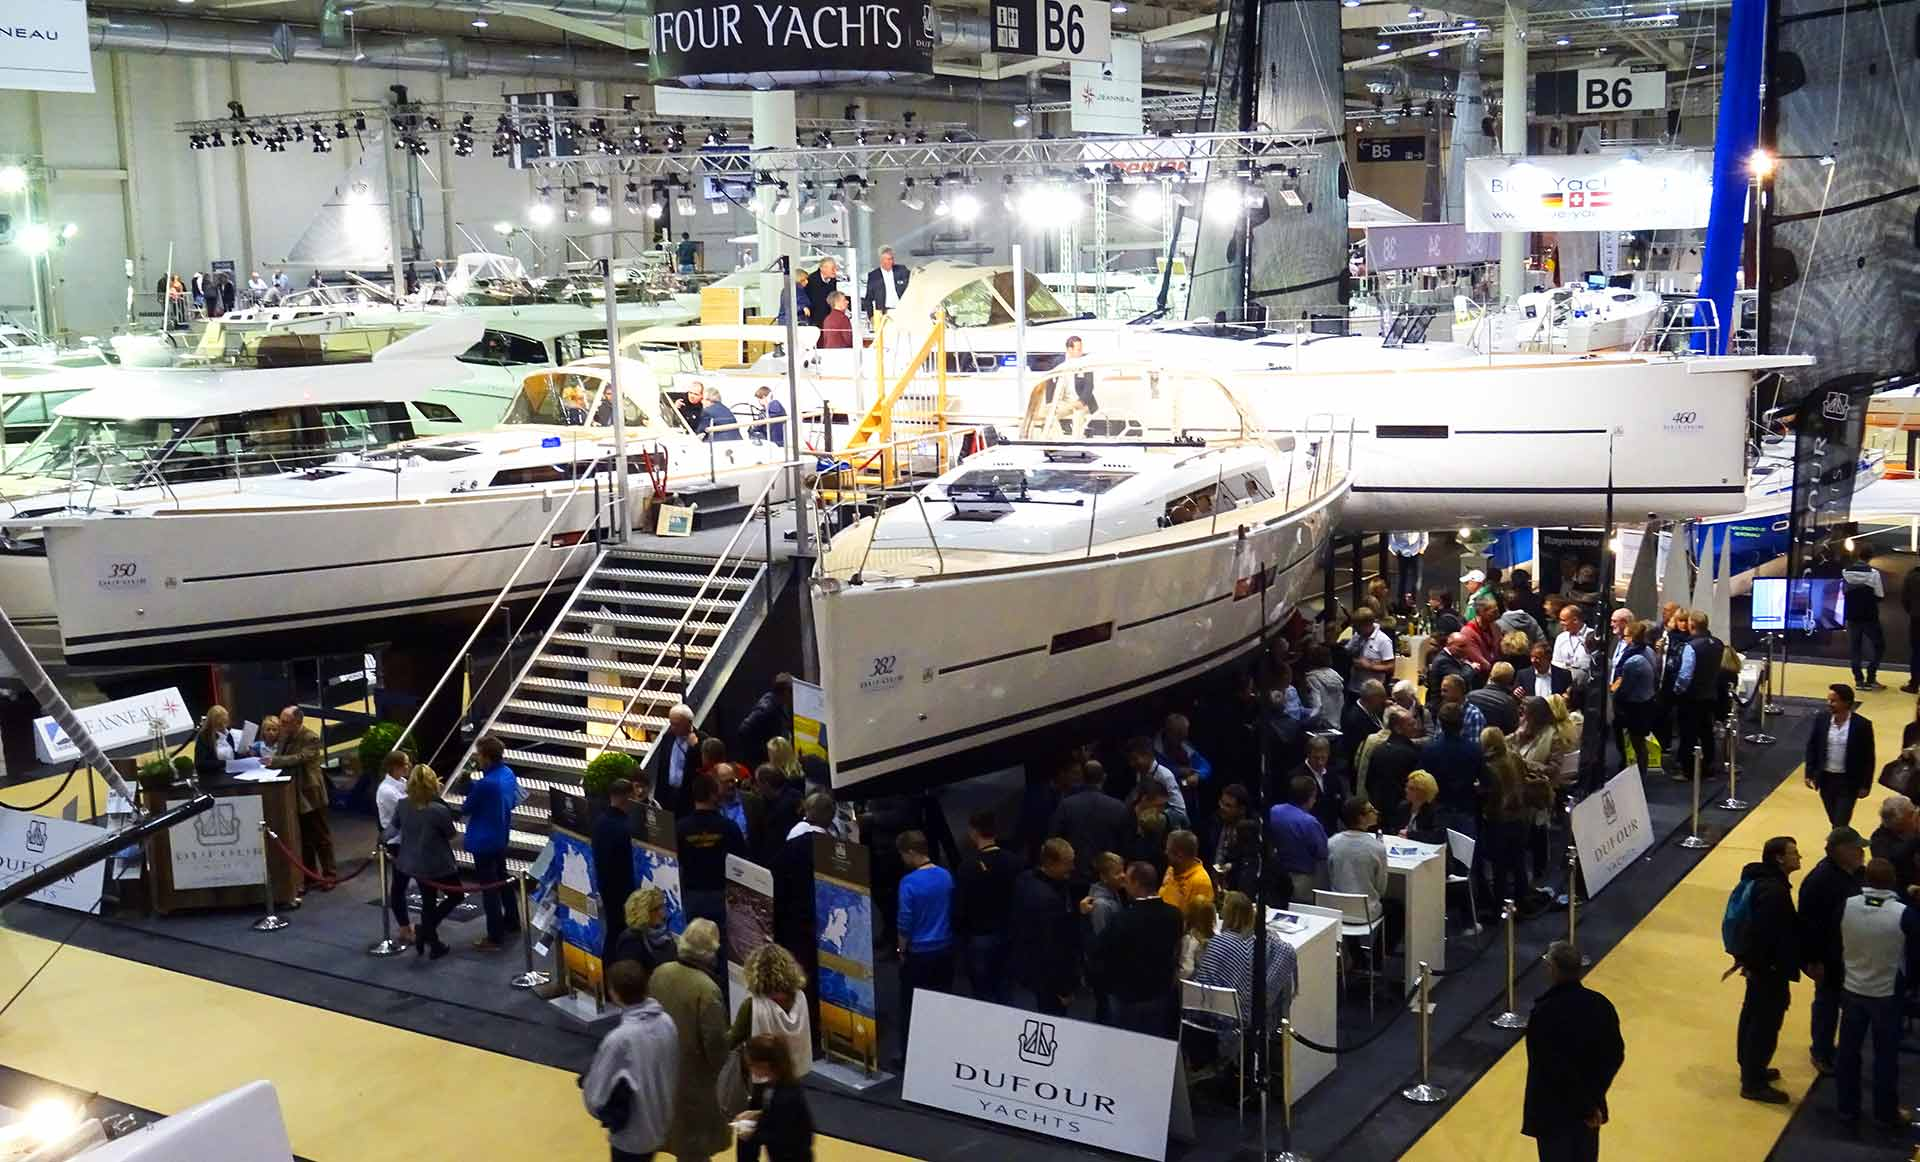 New concepts needed: Trailblazer Dufour Yachts - Party on!